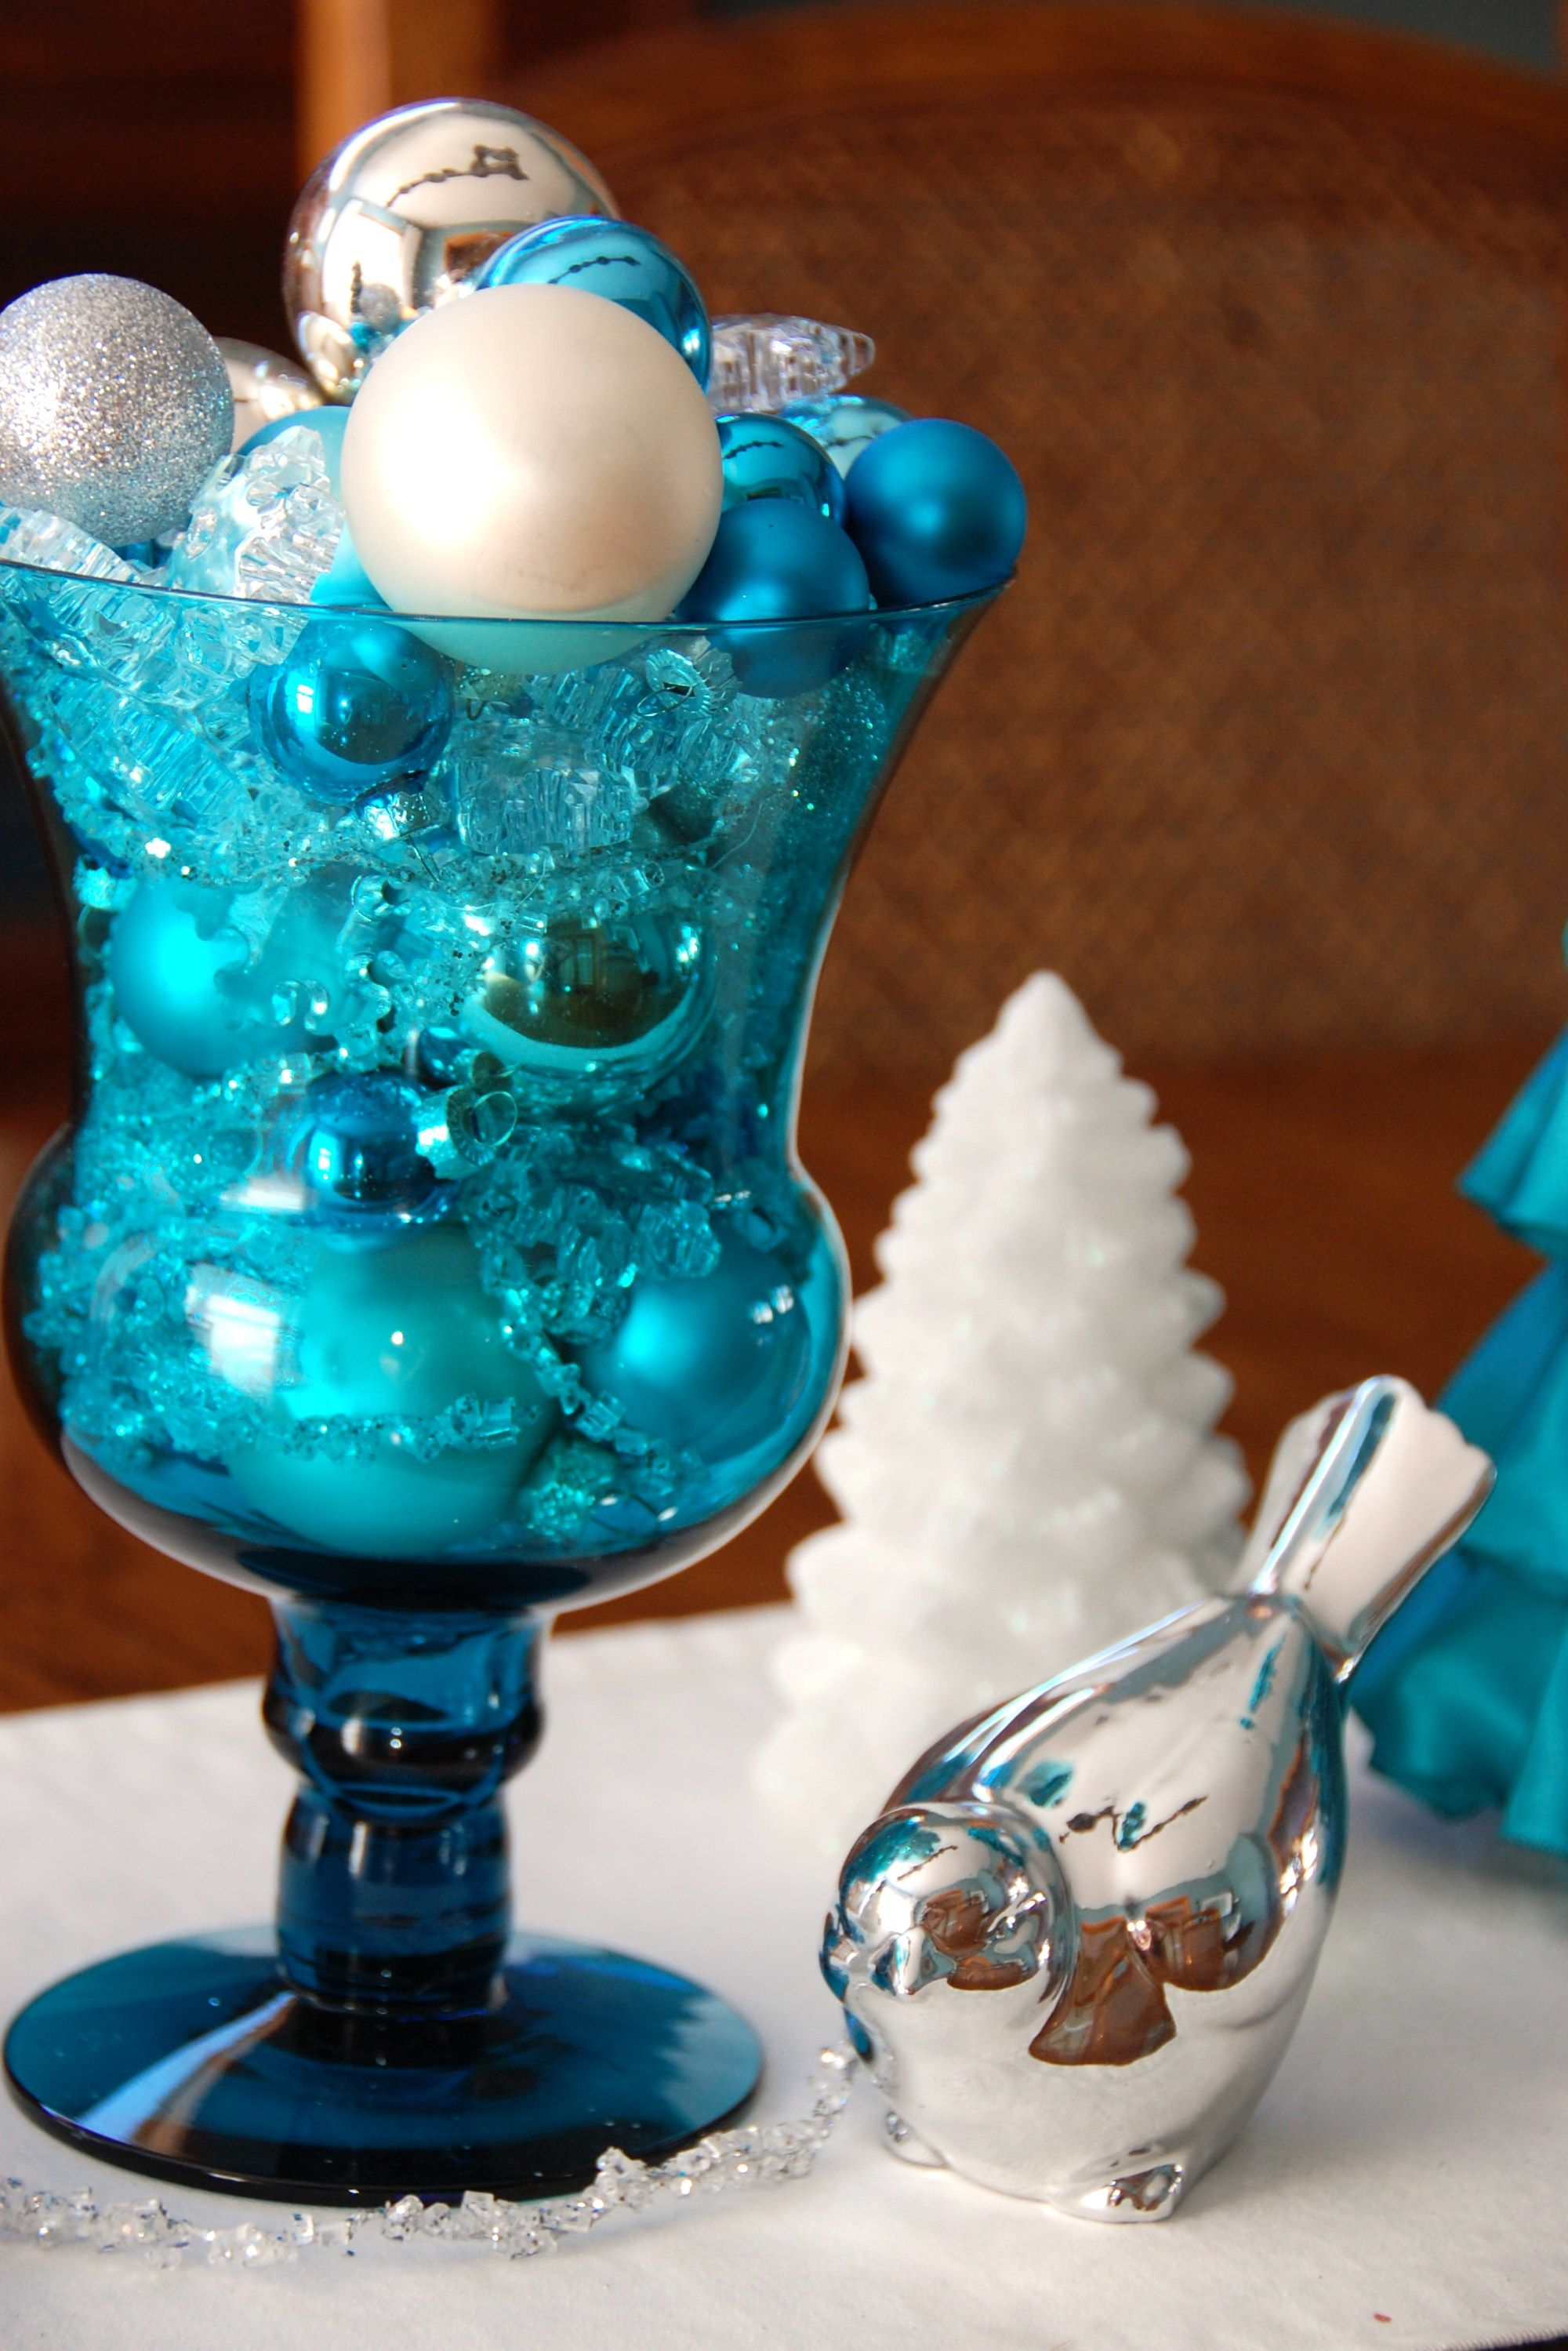 White christmas tree decorations blue - Find This Pin And More On Xmas Centerpiece Blue White Silver Christmas Decorations Color